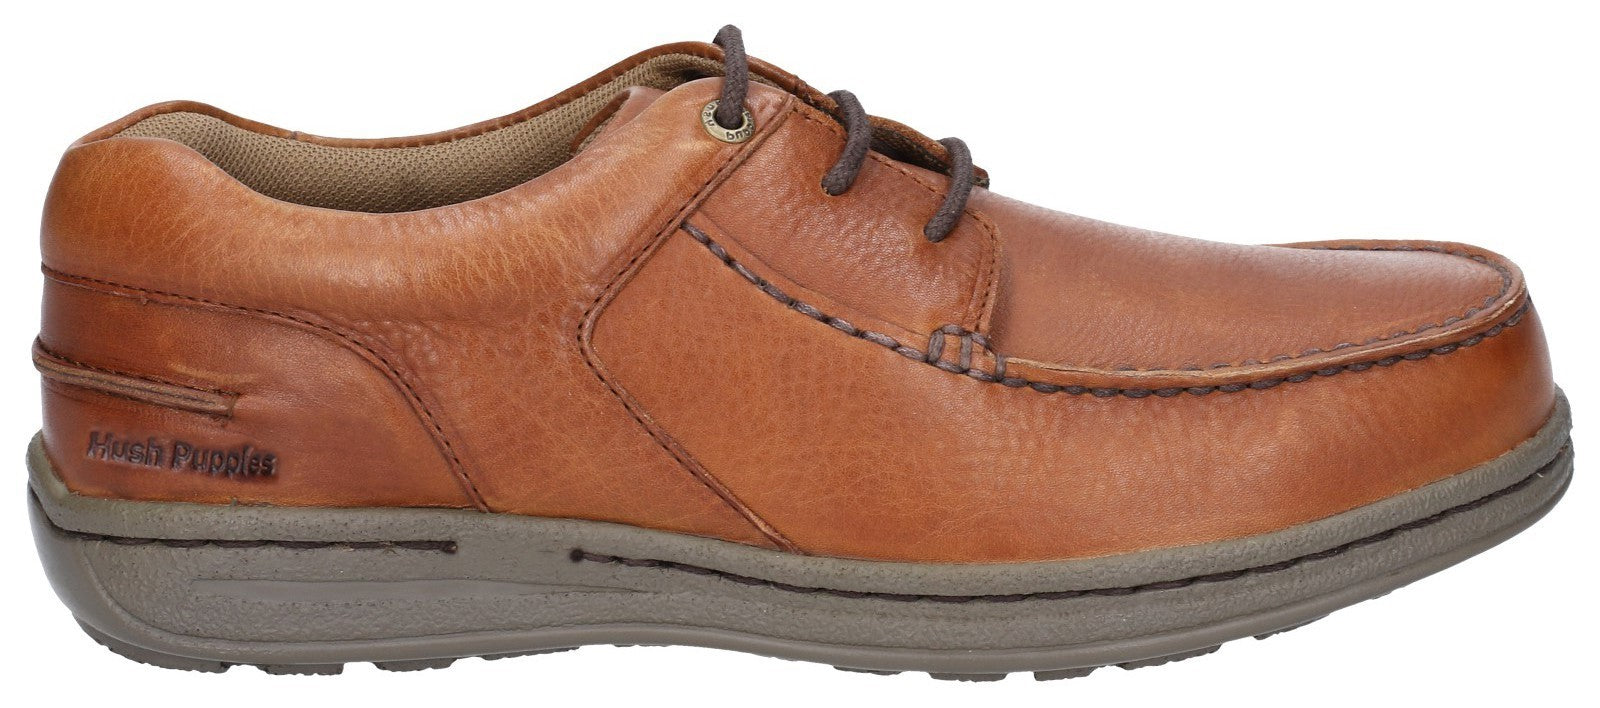 Hush Puppies Men's Winston Victory Causal Lace Up Shoe Tan 28381